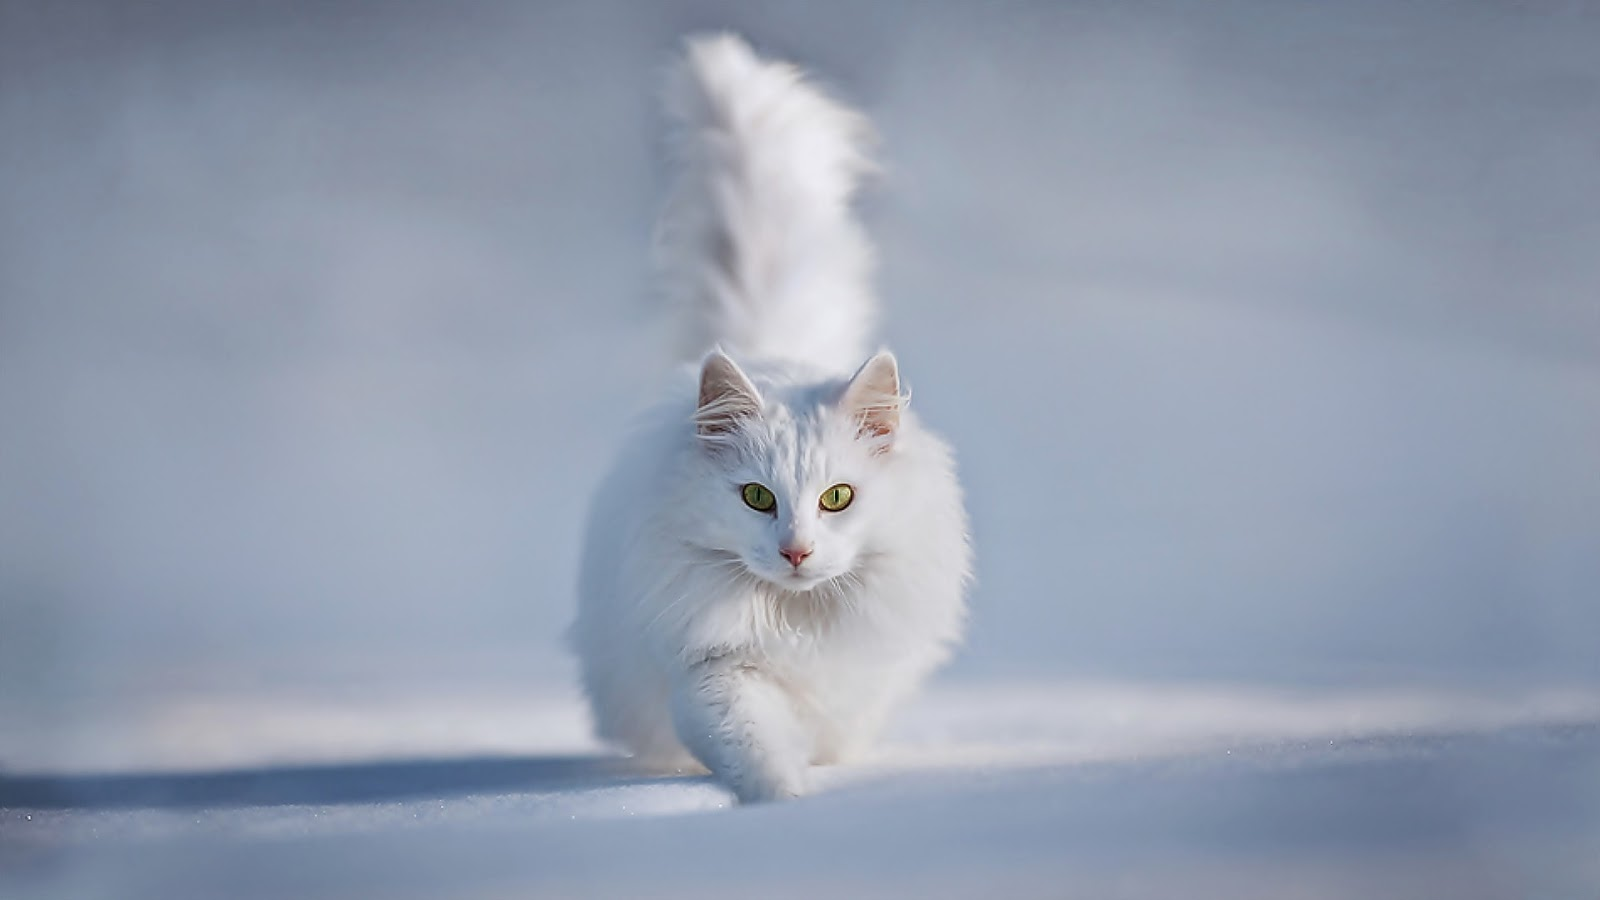 Unique Cat Wallpaper Hd Full Hd Cat Wallpaper